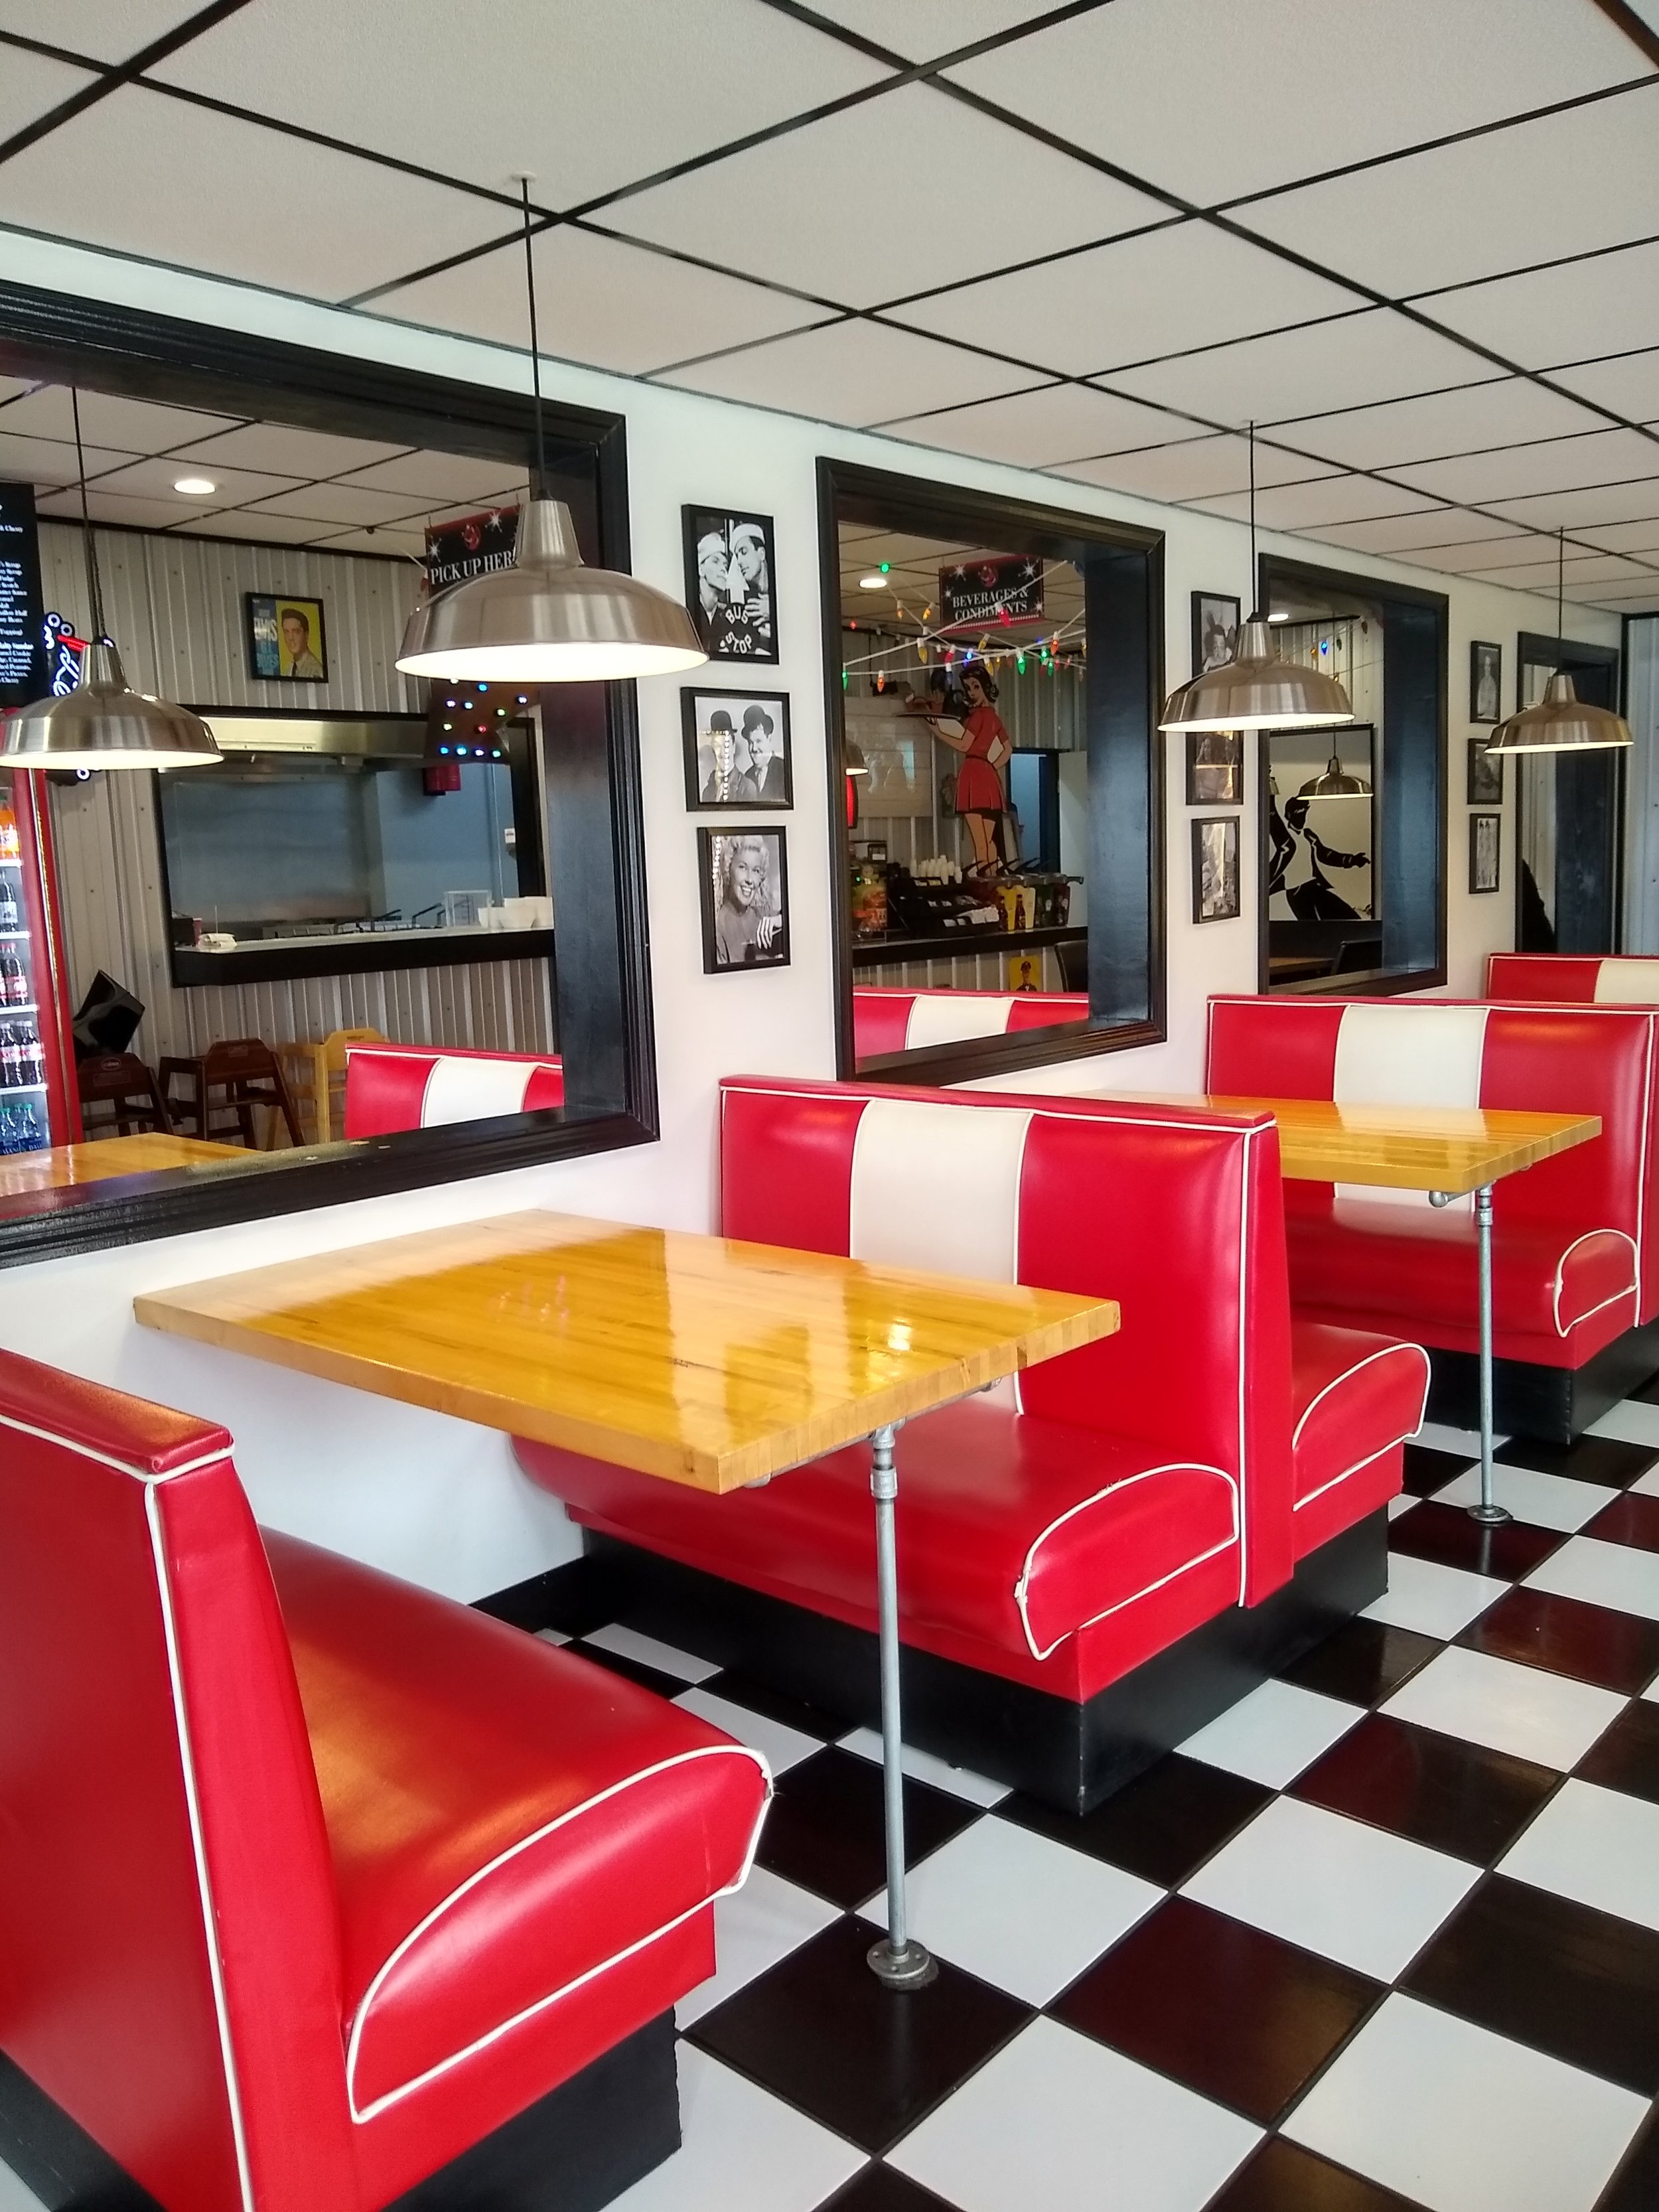 Maybe Baby Burgers, a 1950s inspired family friendly diner!